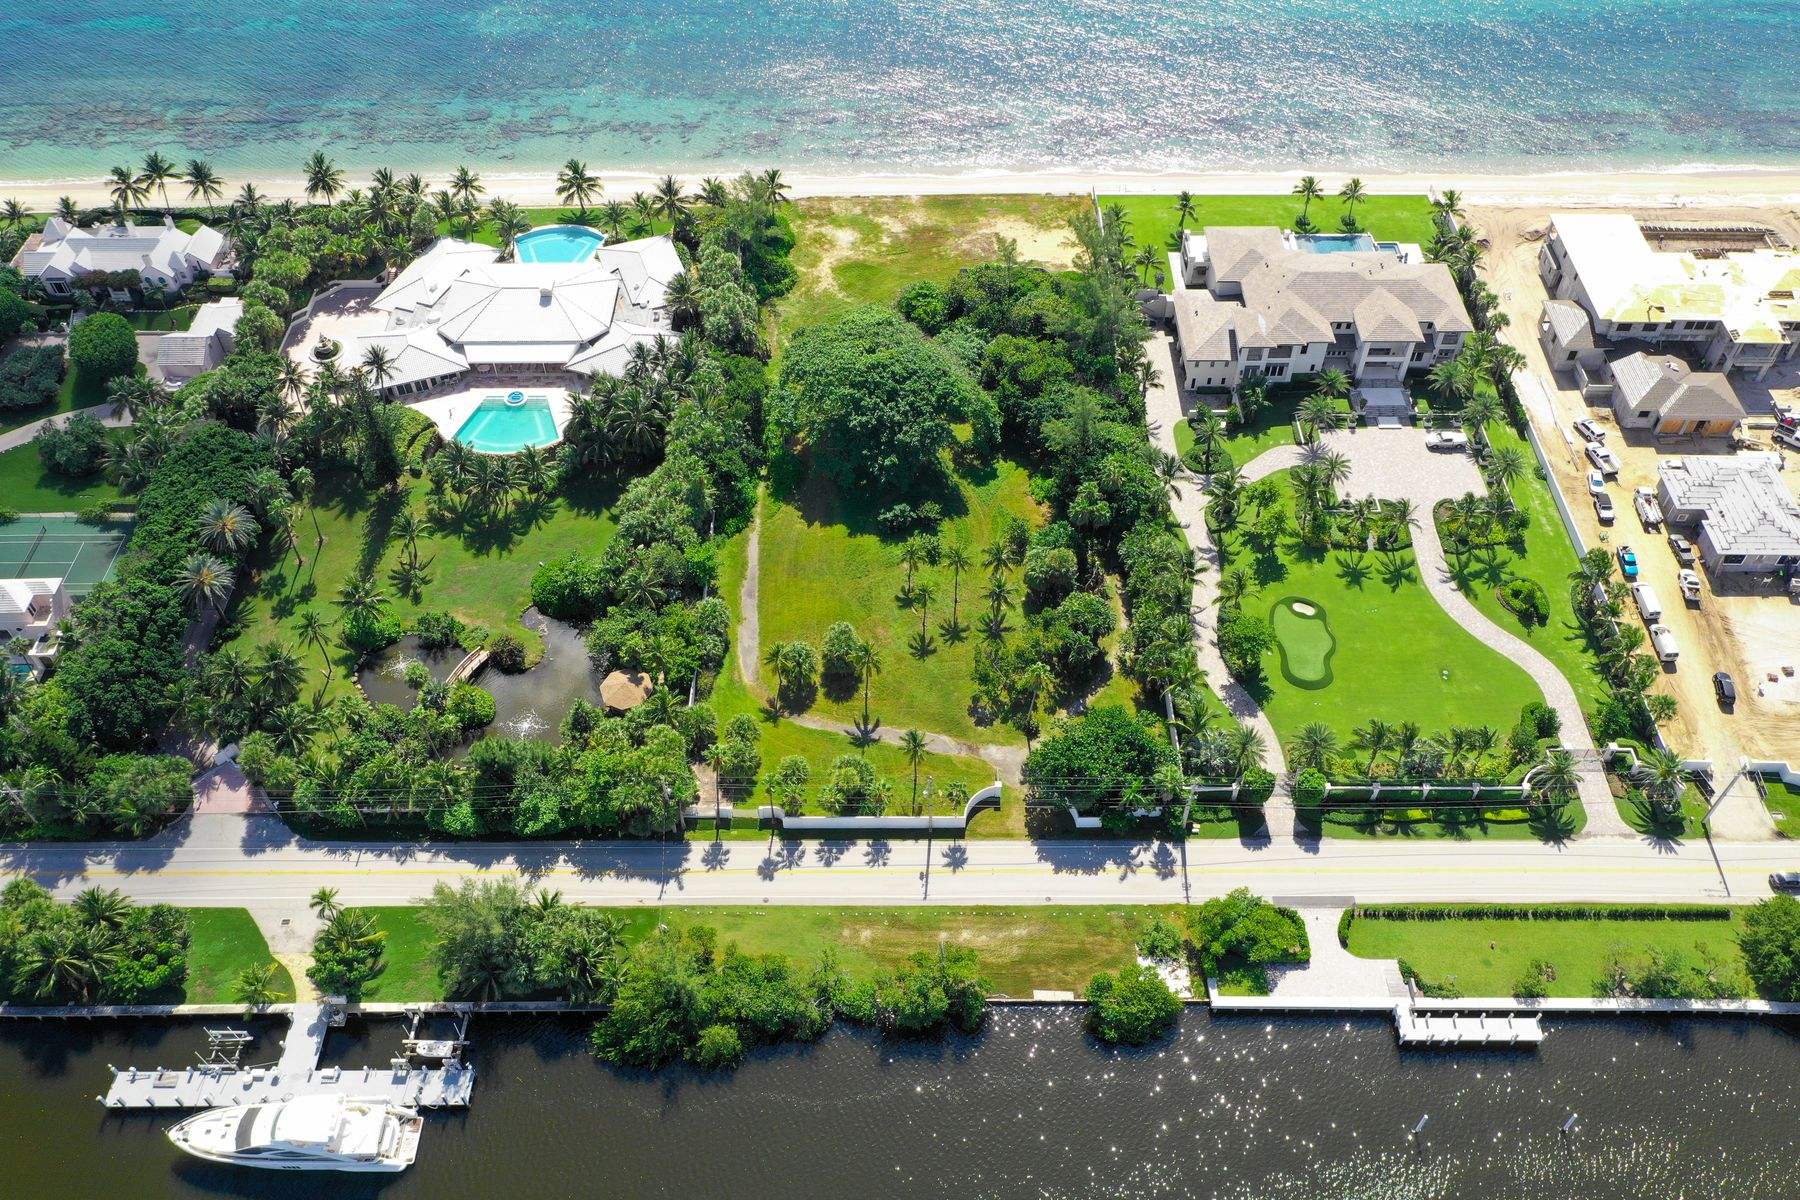 Land for Sale at Direct Ocean and Intracoastal Parcel 980 S Ocean Blvd Manalapan, Florida 33462 United States